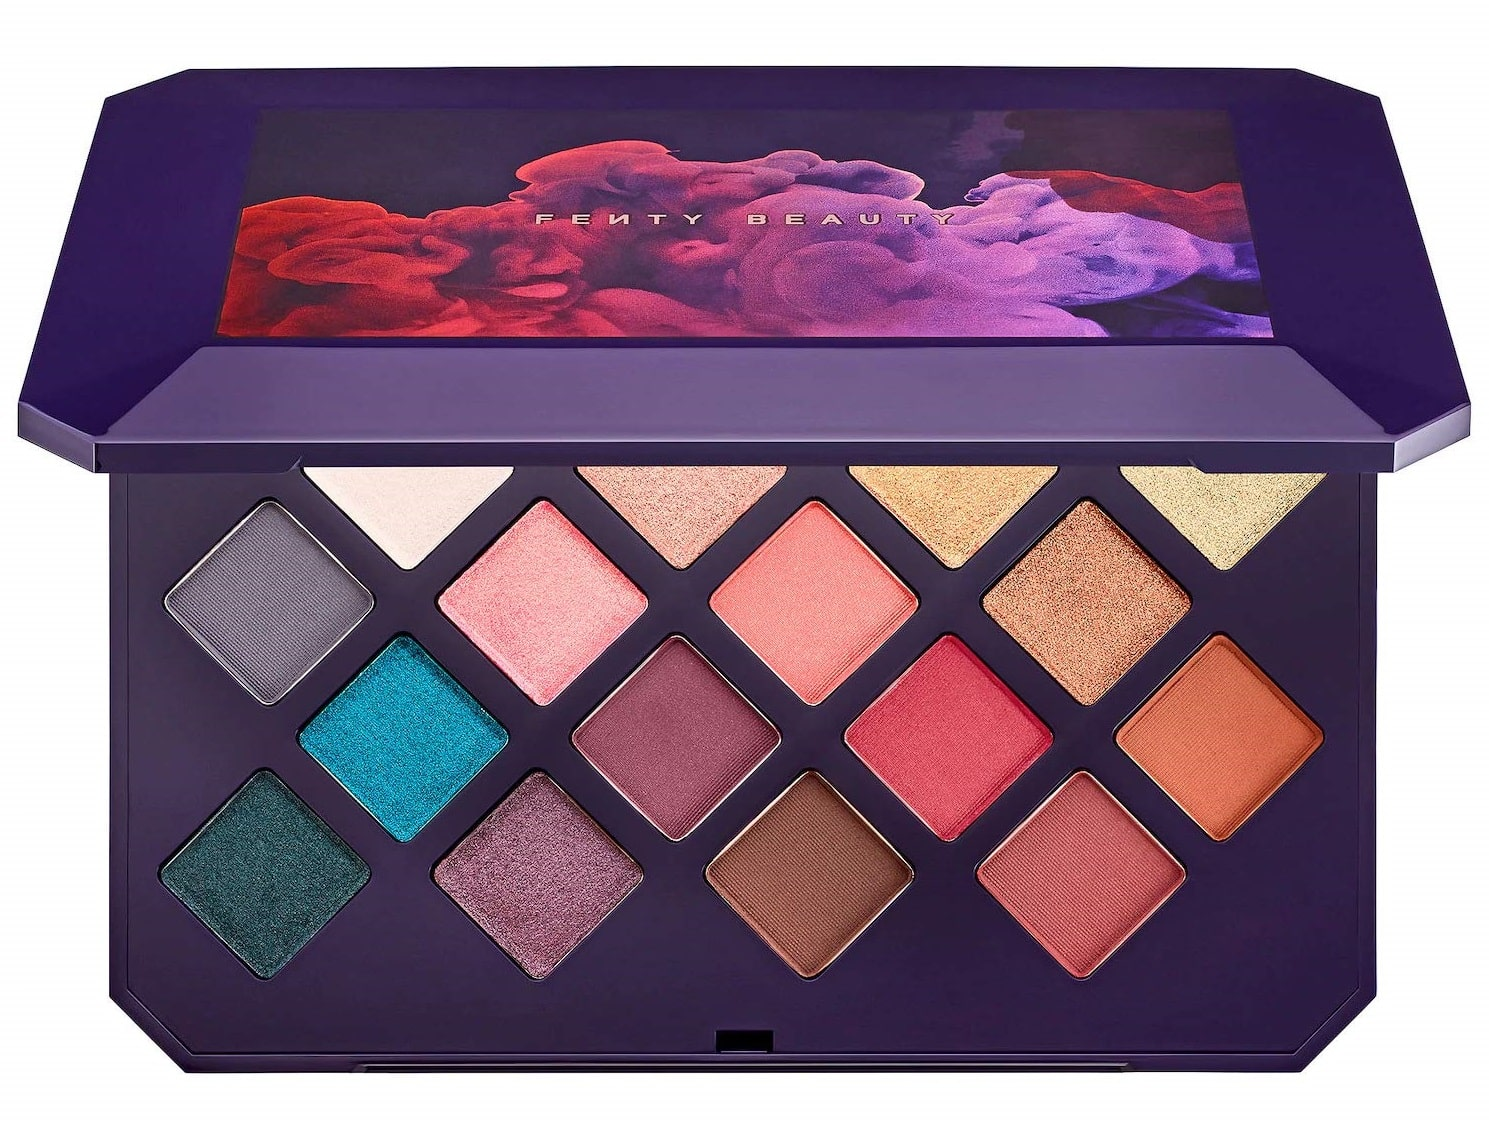 NEW Fenty Beauty Moroccan Spice Eyeshadow Palette